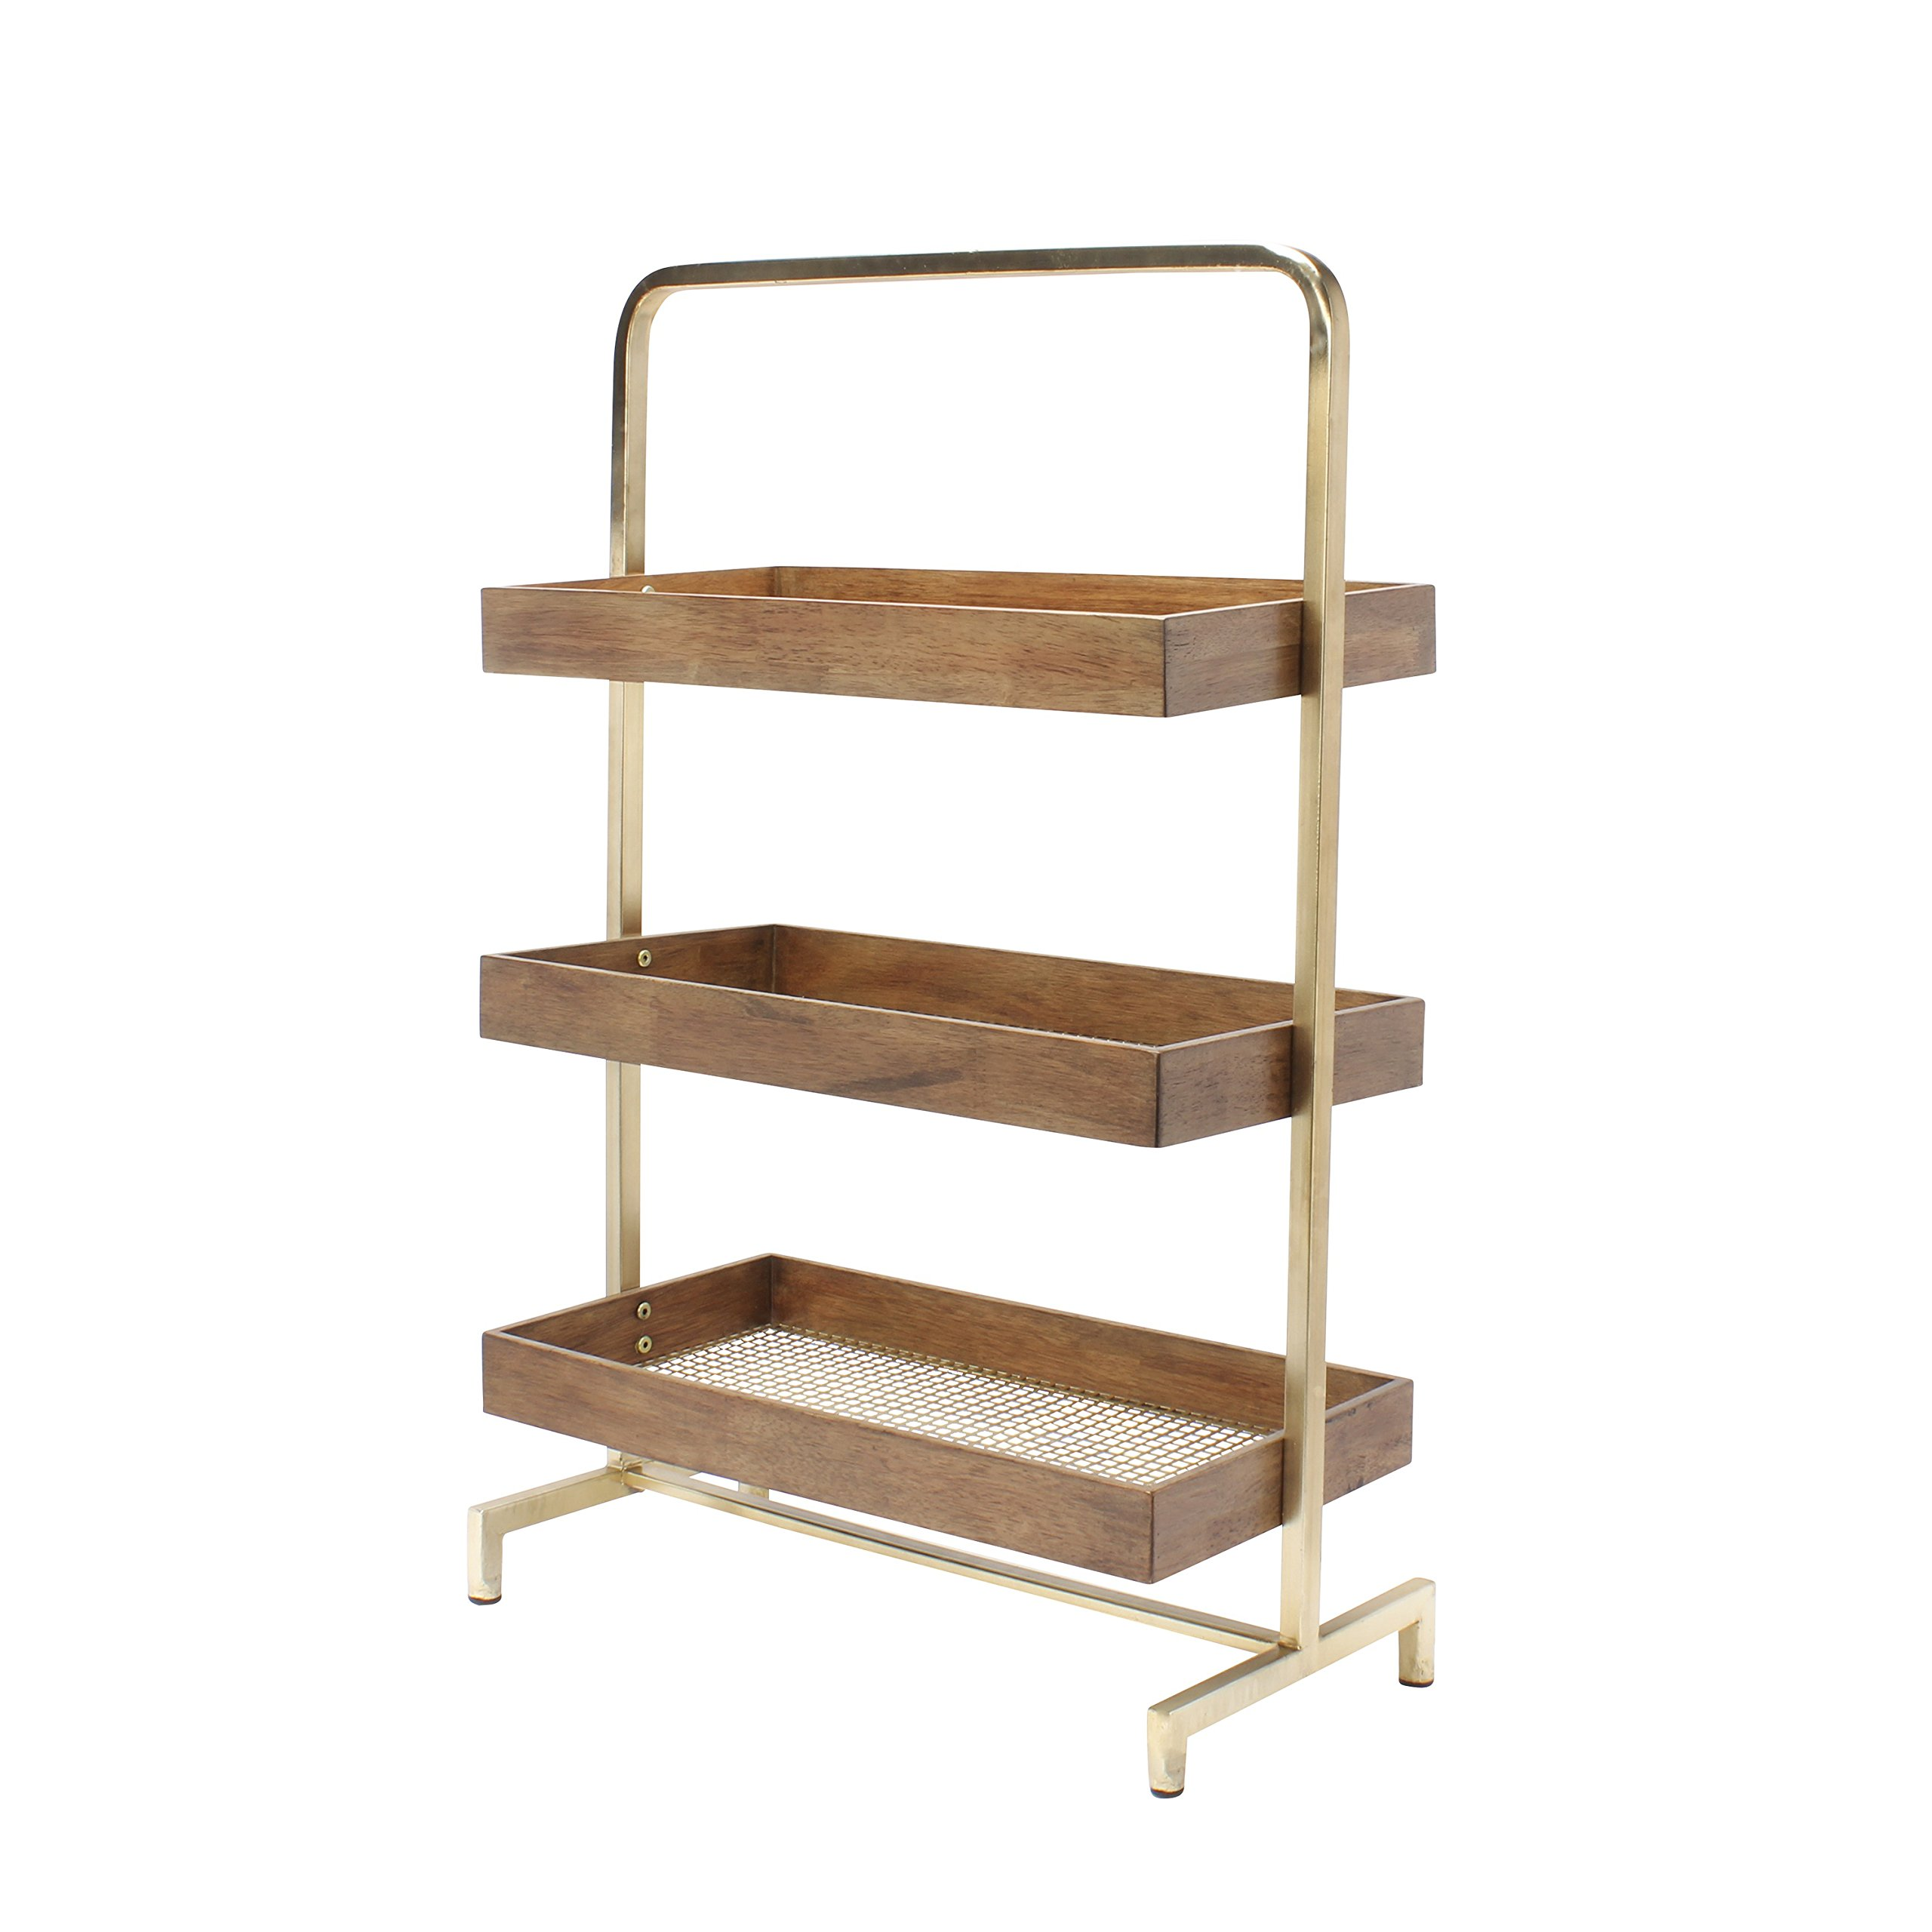 Kate and Laurel Hanne 3 Tray Free Standing Shelf, Walnut Wood and Perforated Gold